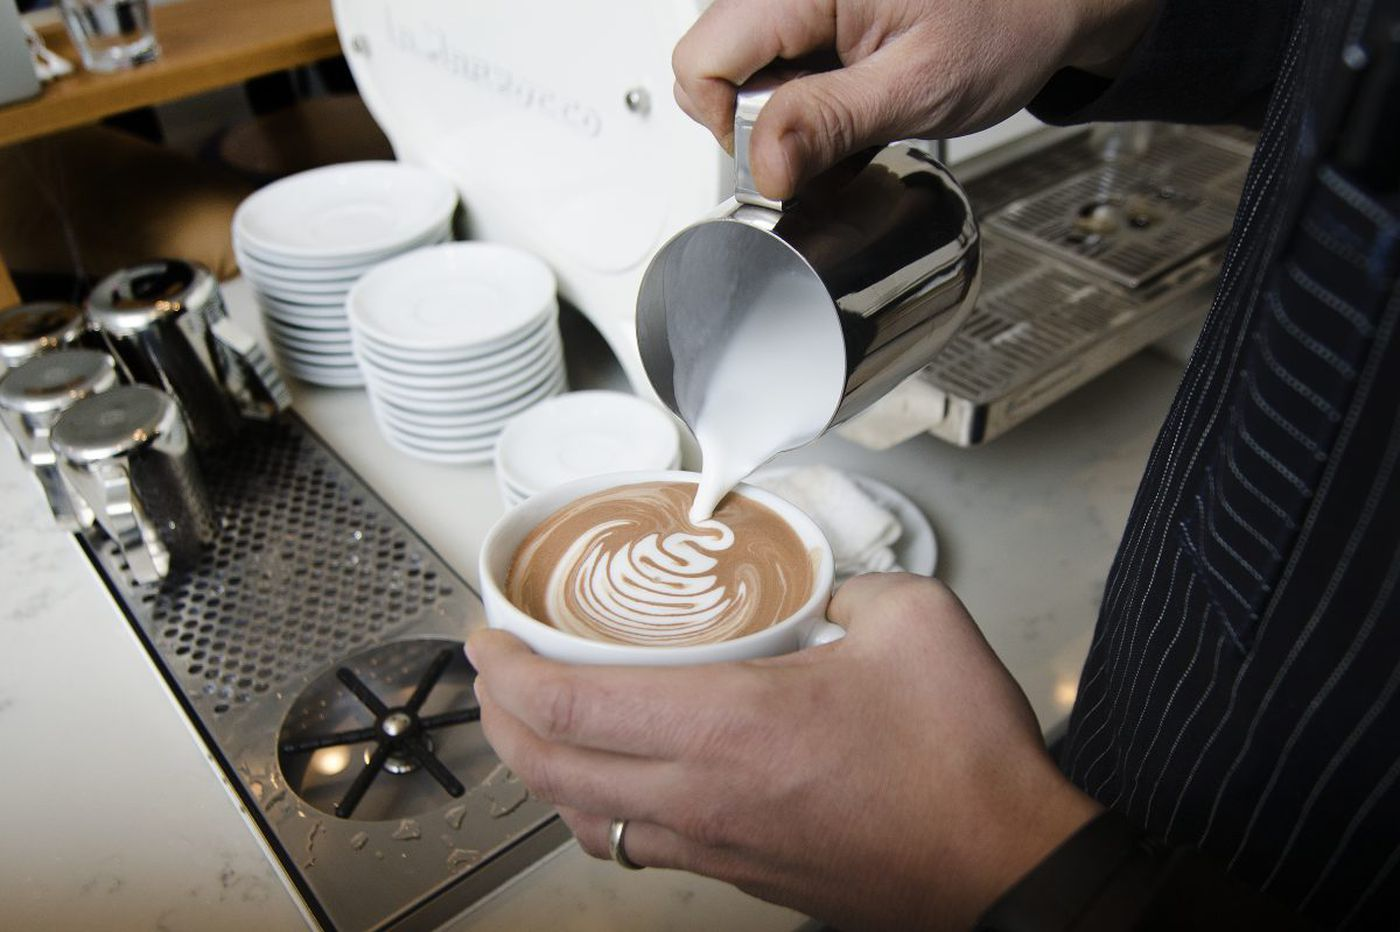 Protesting Starbucks? Here are Philly's best independent coffee shops